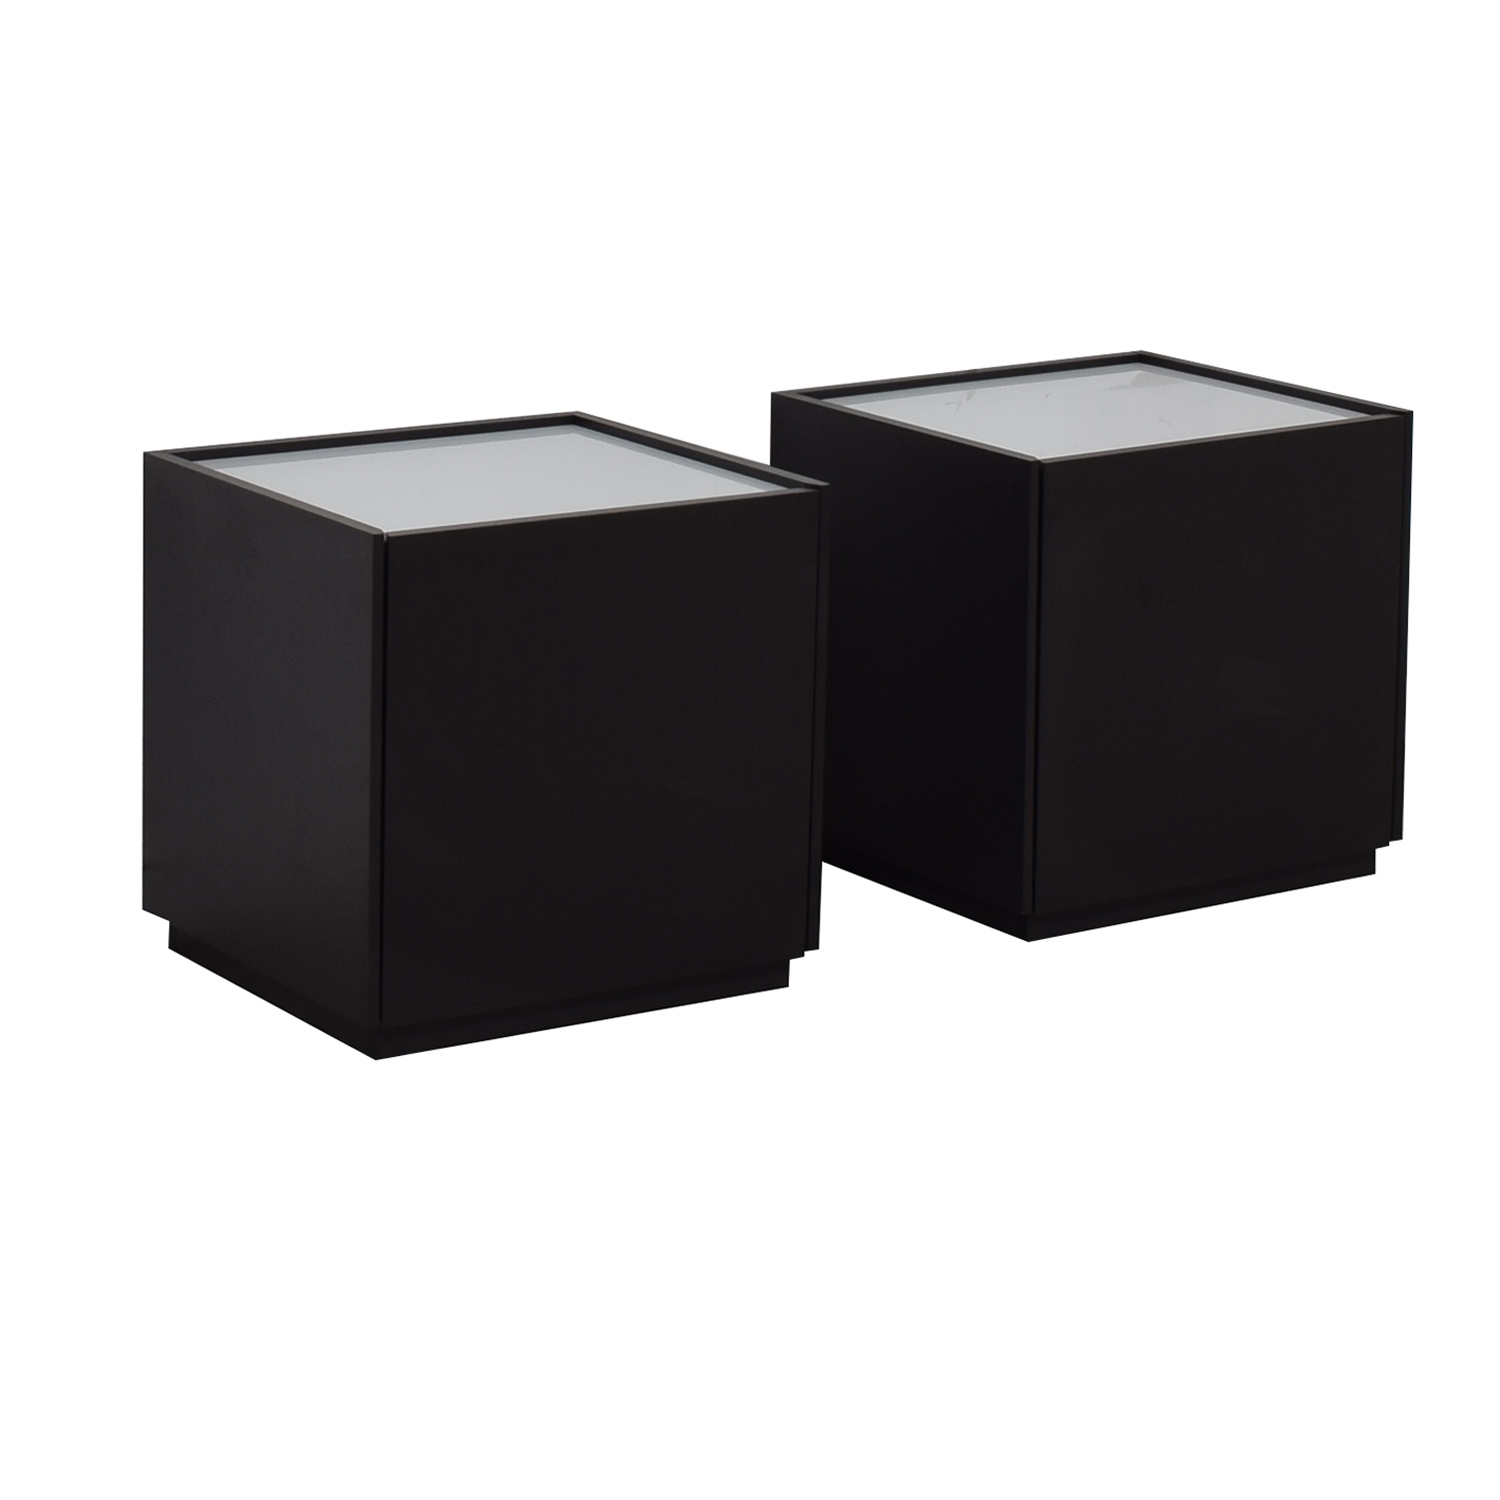 IKEA IKEA White and Black Two-Drawer End Tables End Tables